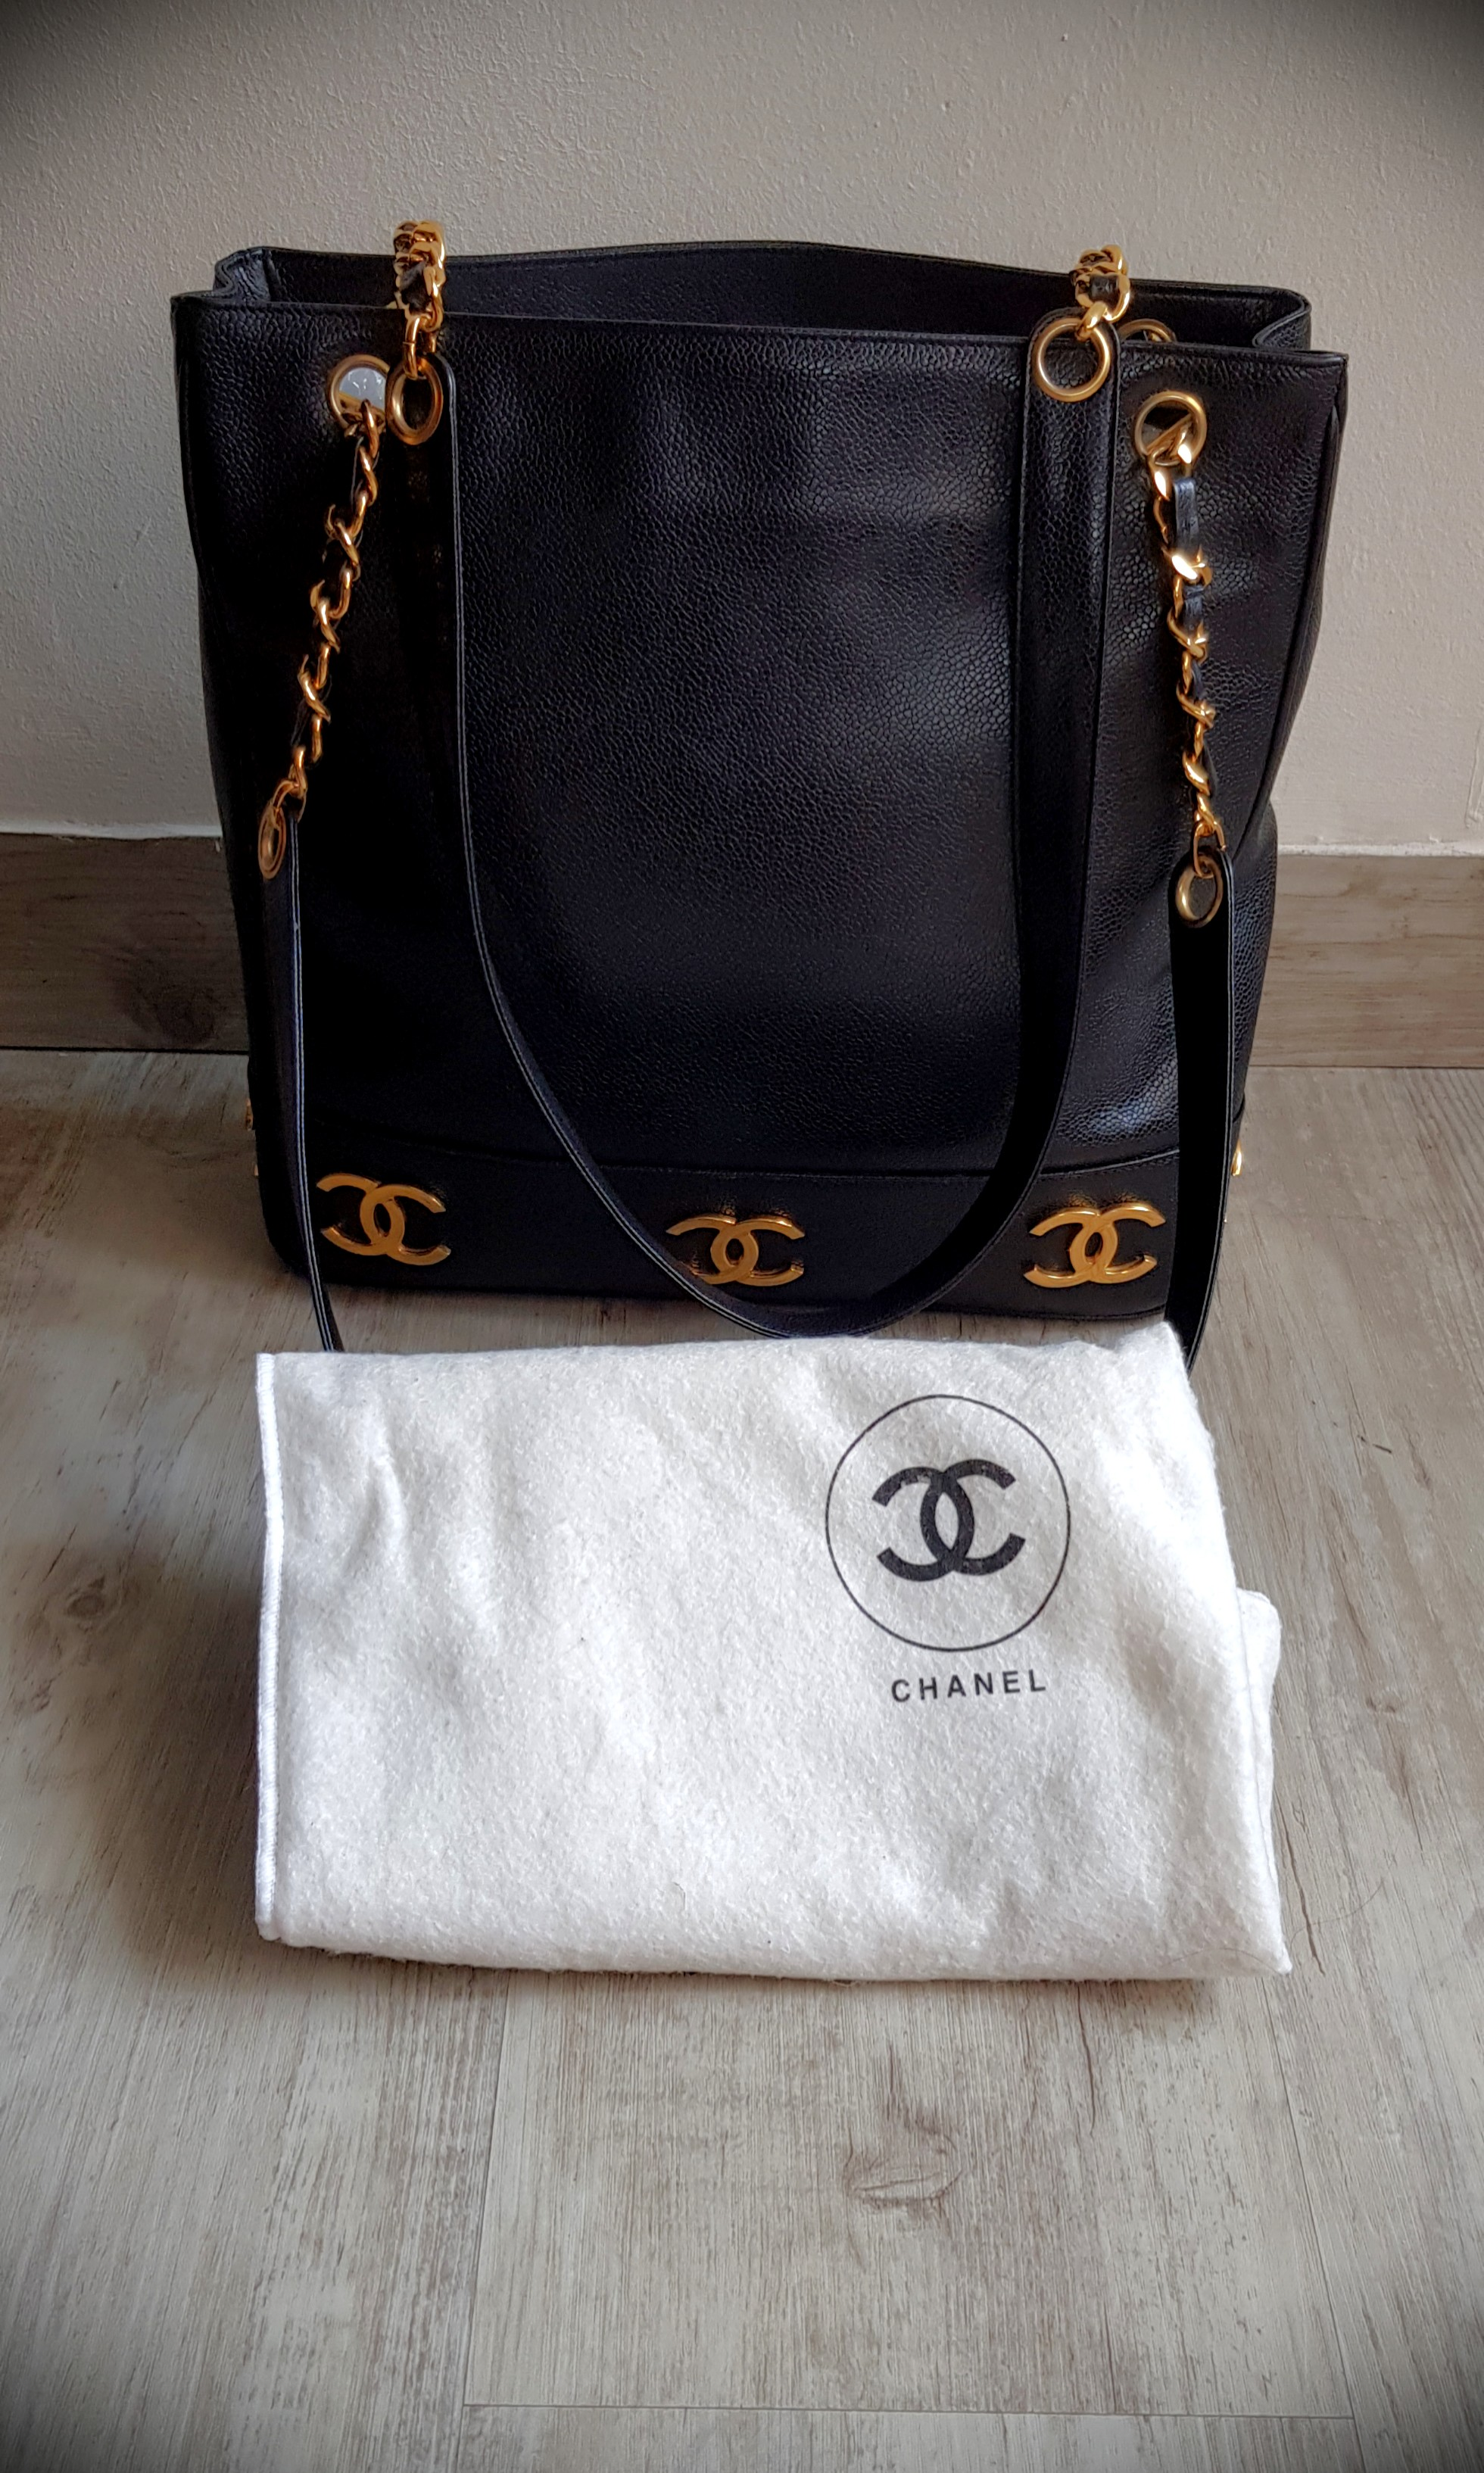 c1a3b6cfe4fe Chanel Bag 24k Gold plated, Luxury, Bags & Wallets, Handbags on ...